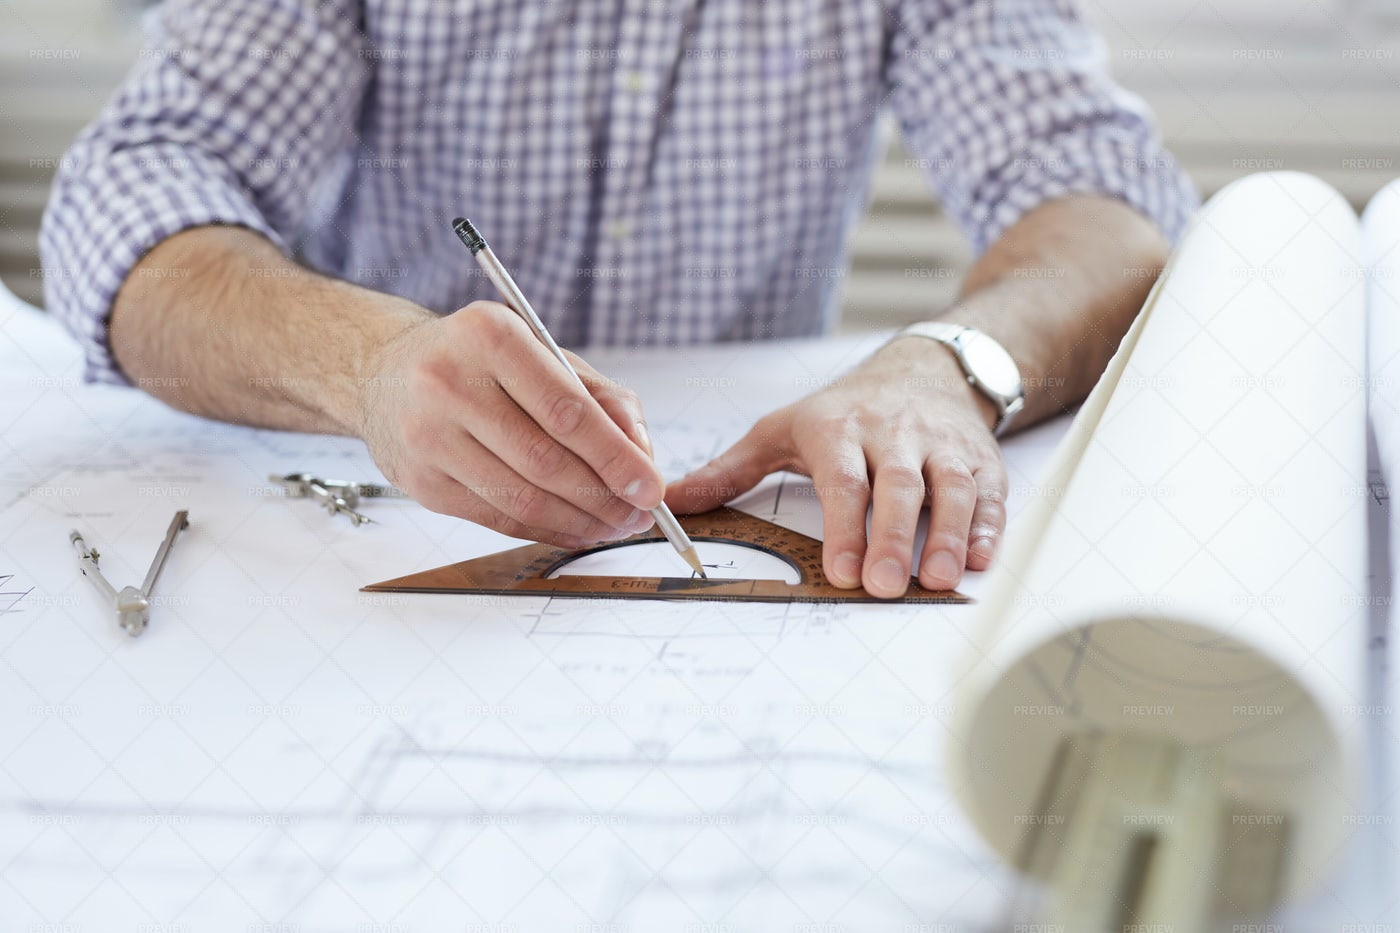 Engineer Drawing Plans At Workplace: Stock Photos